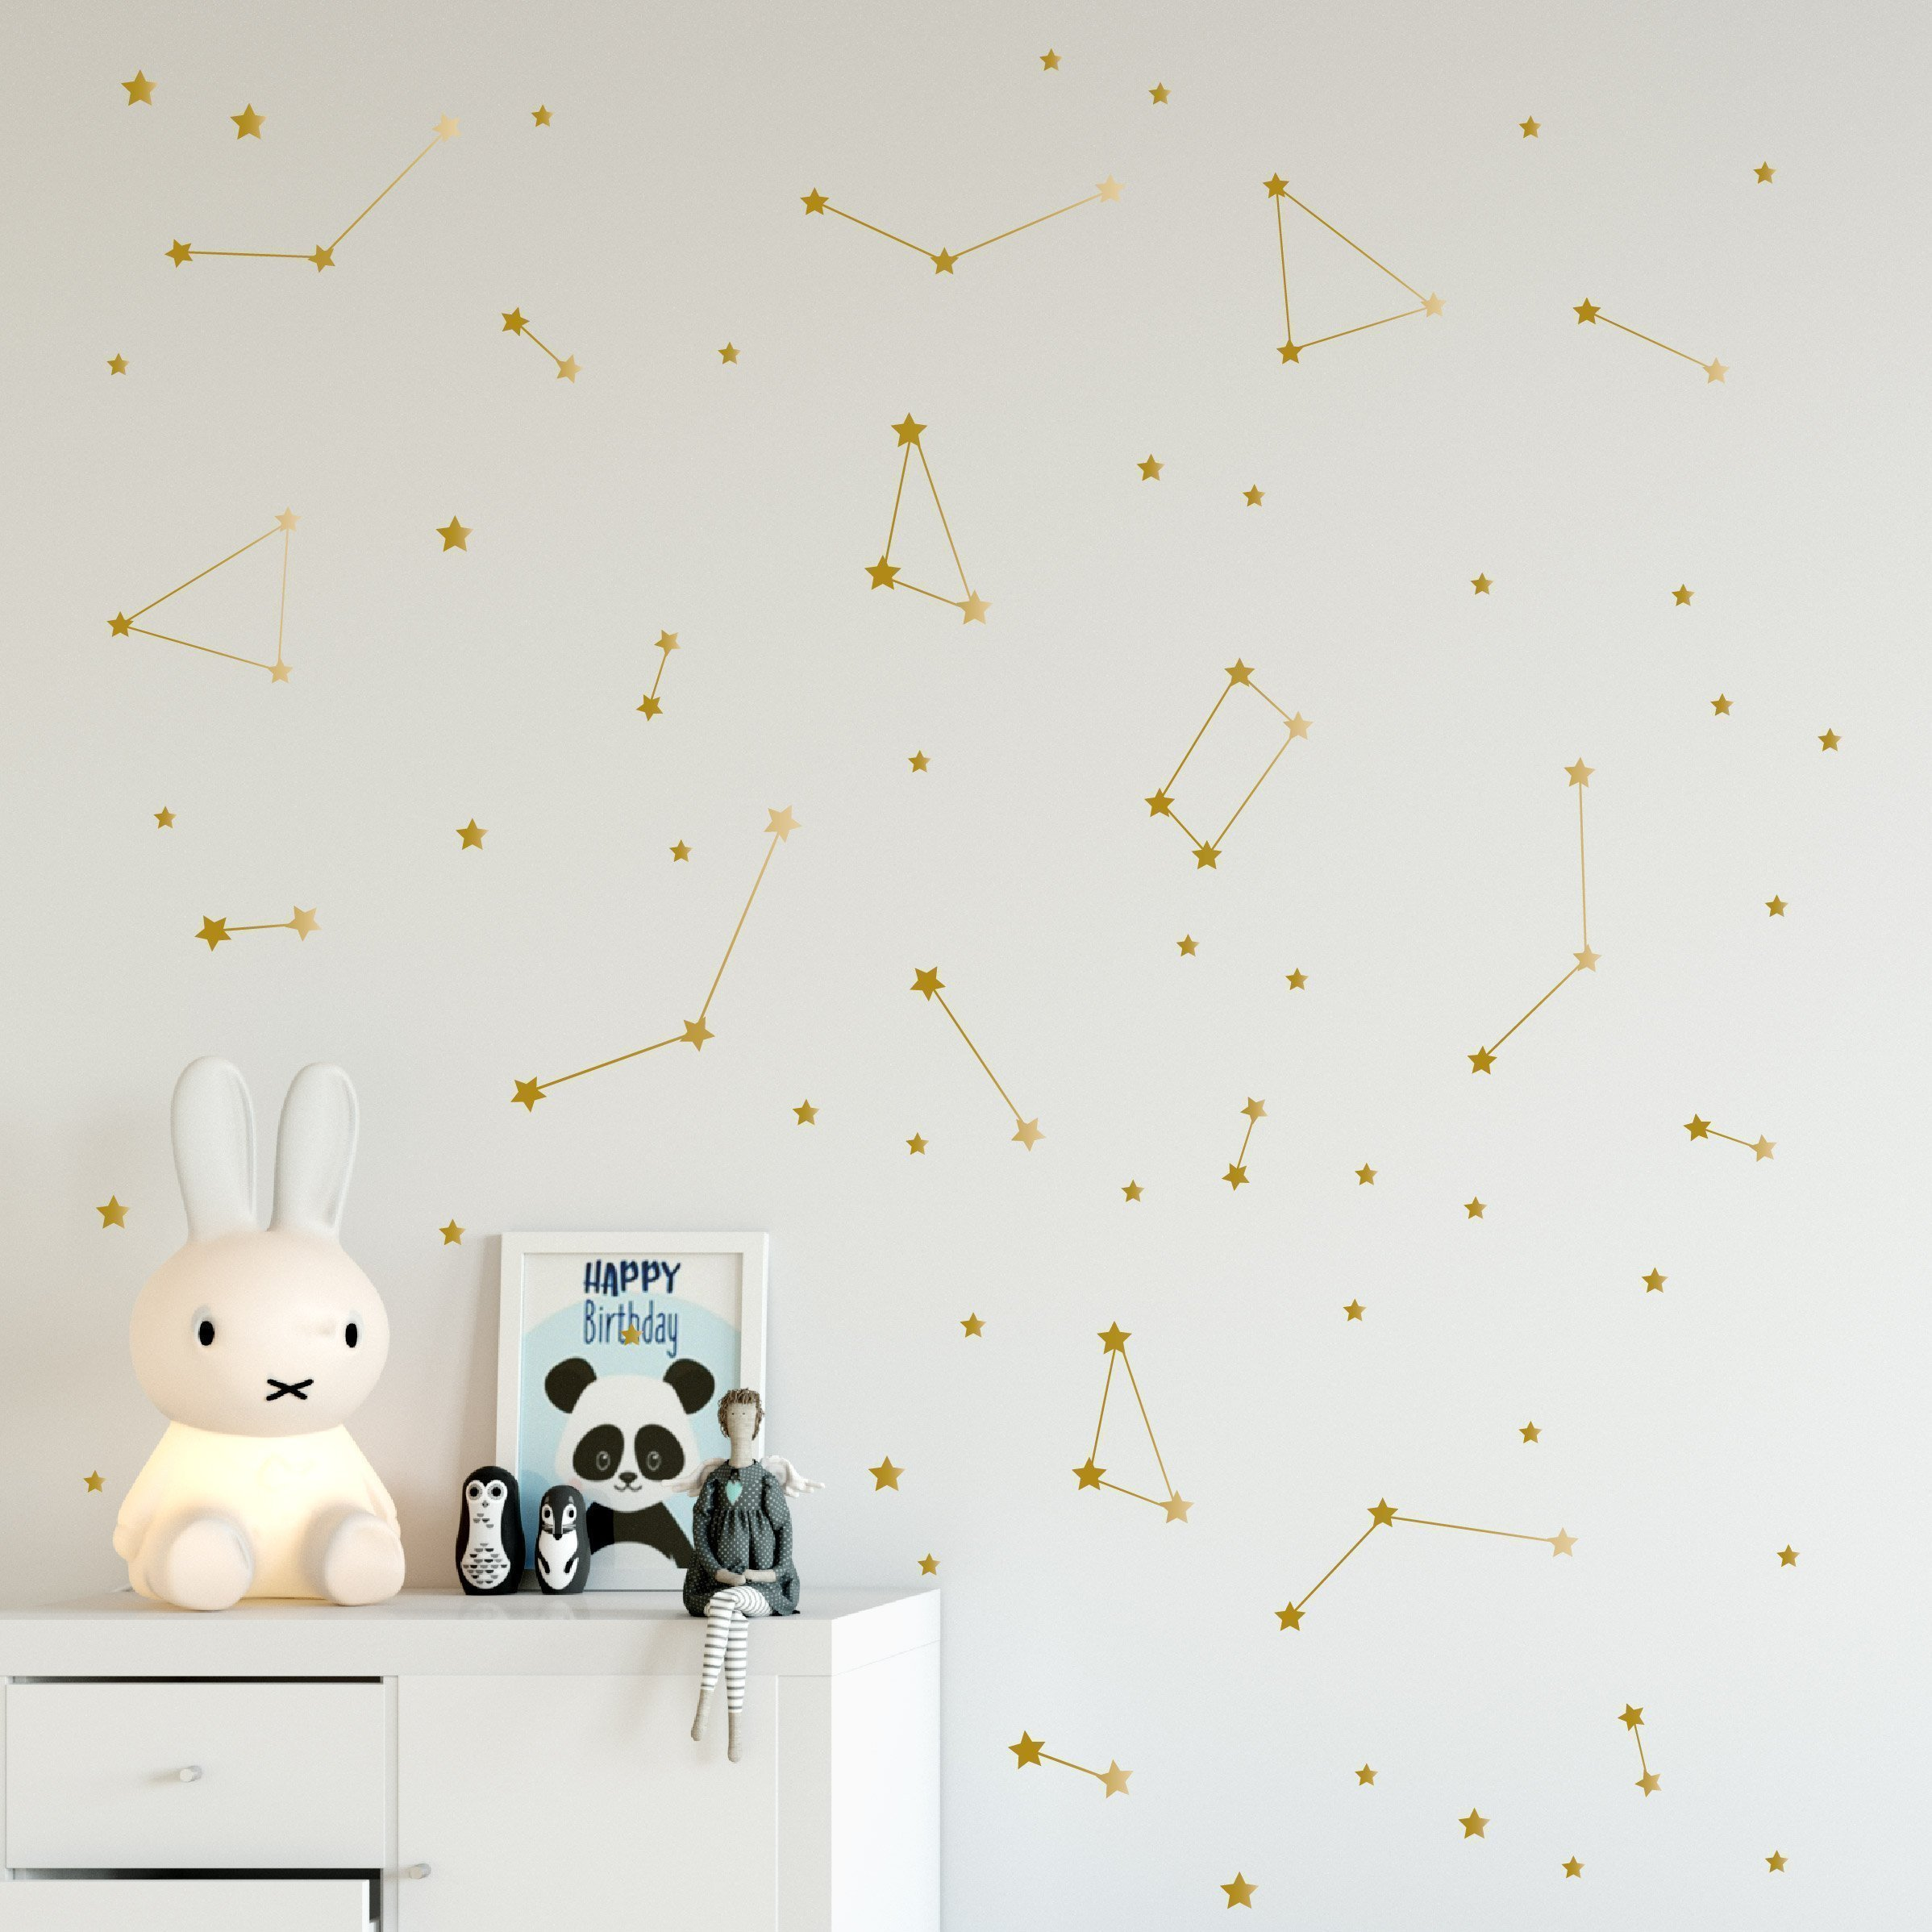 Gold Constellation Wall Decals, Removable Space Nursery Vinyl Stickers, Milky Way Stars, 96 elements by Studio Picco